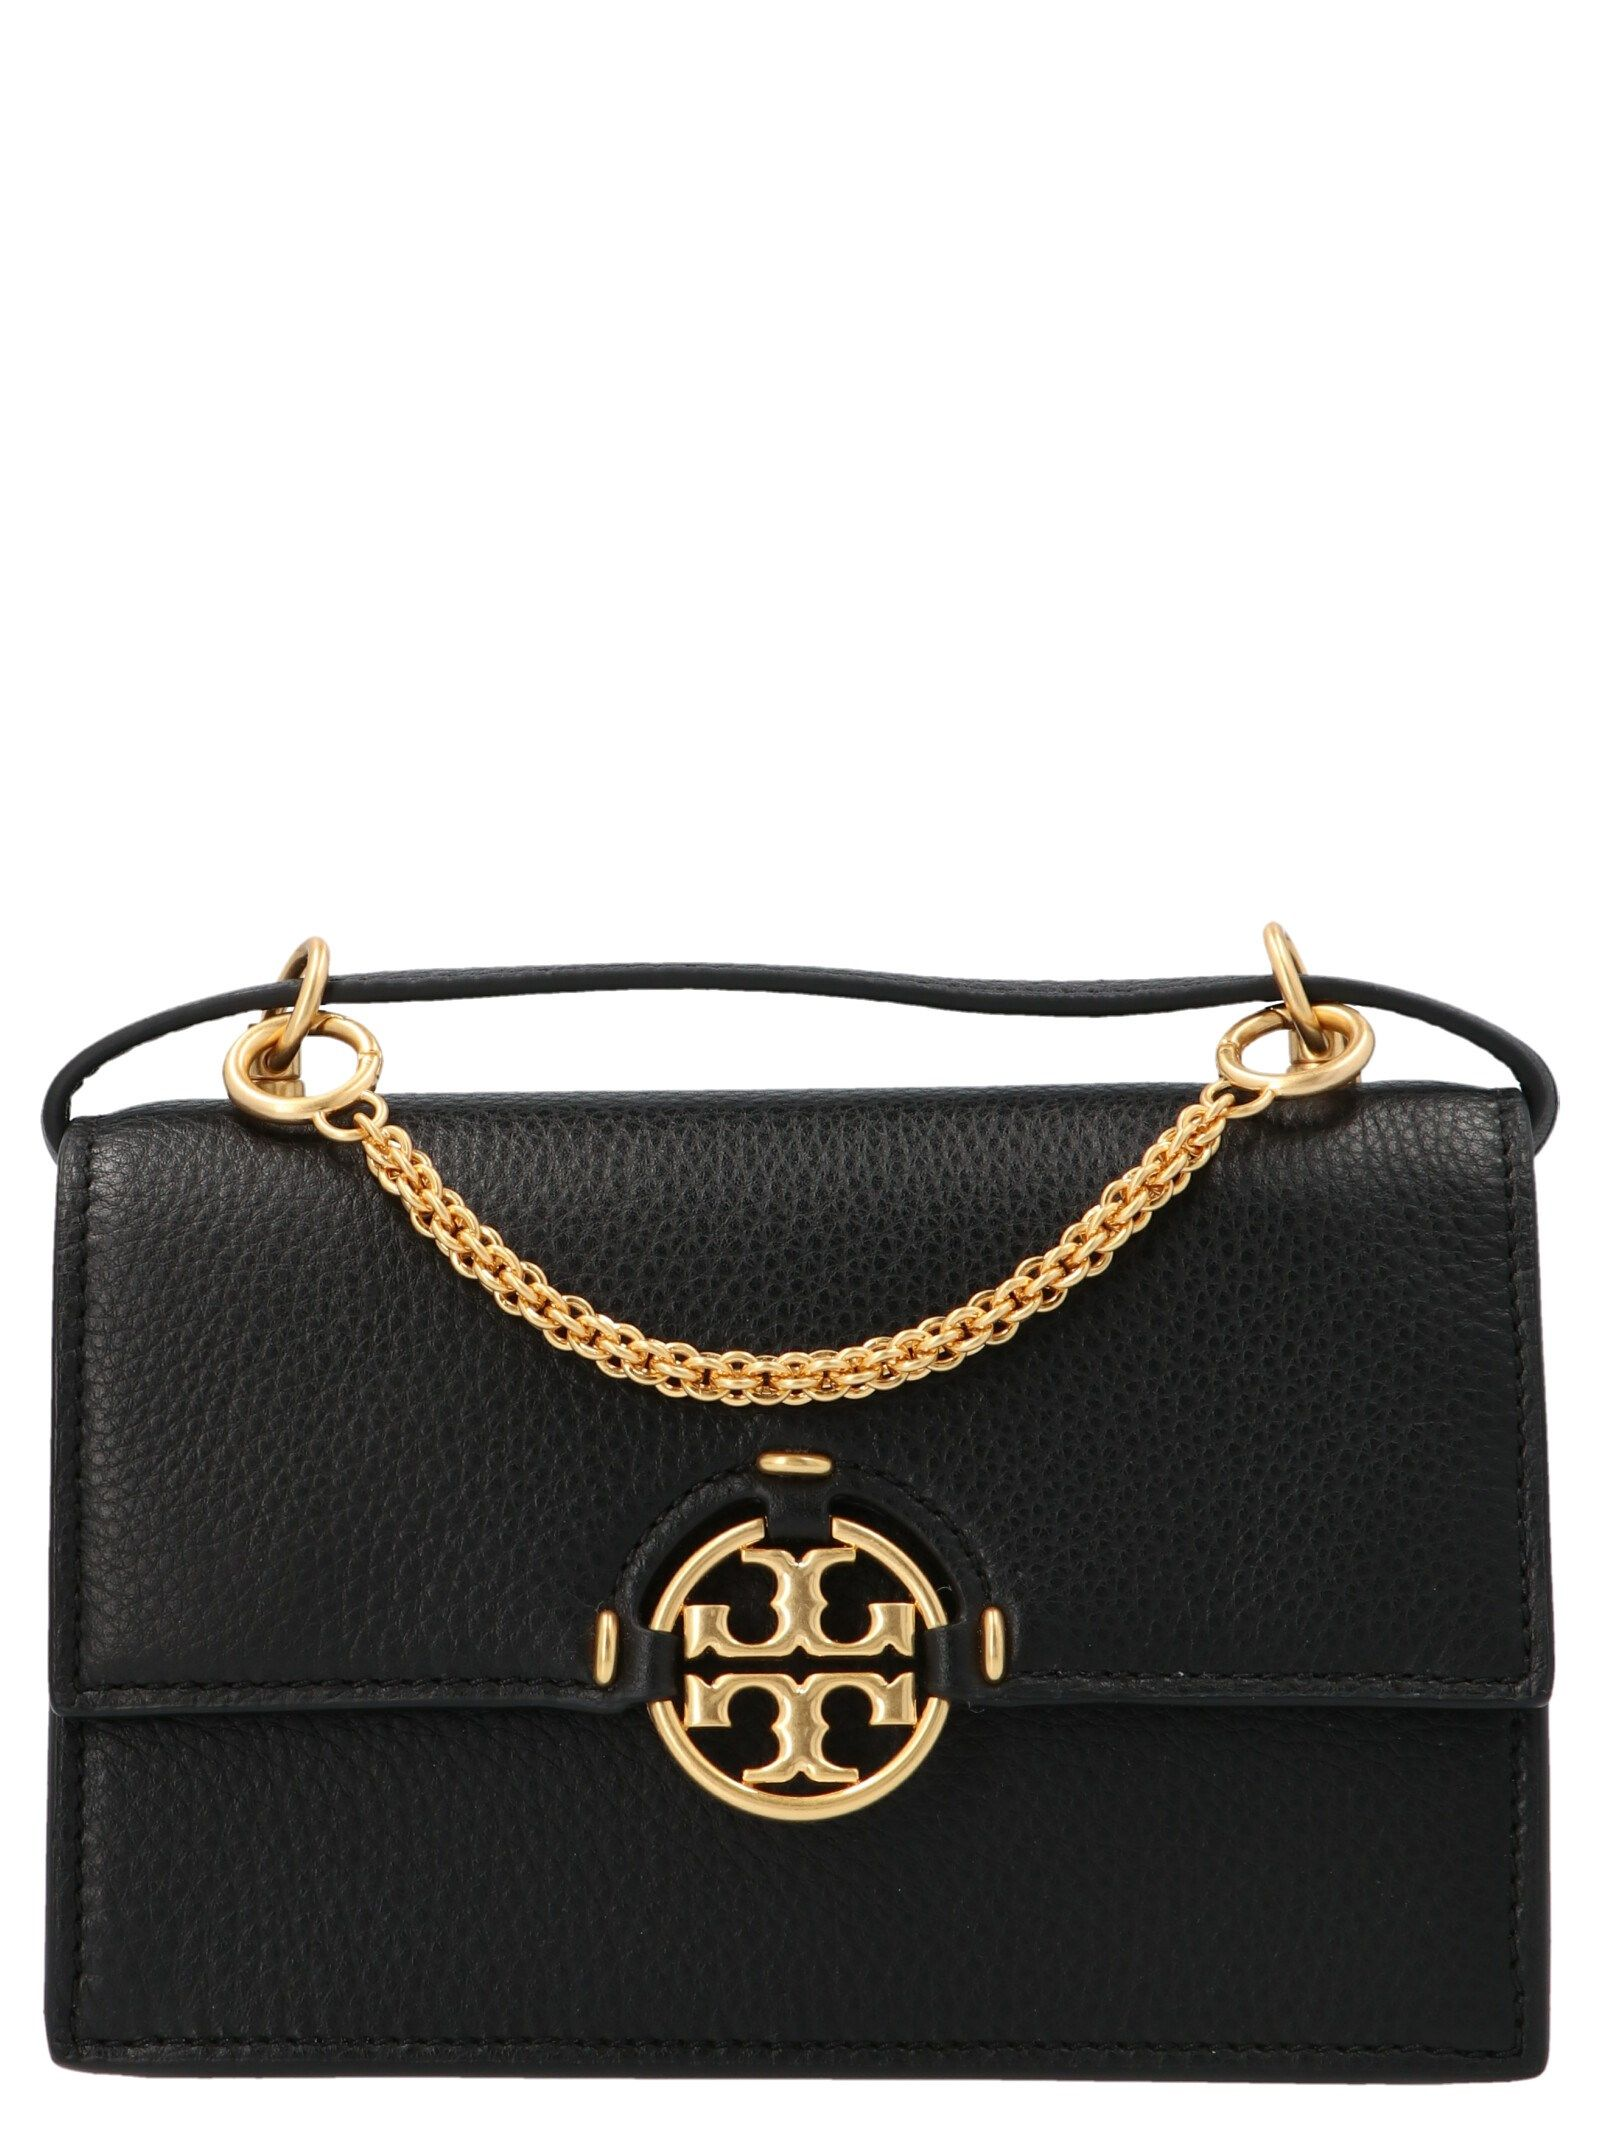 Tory Burch Leathers TORY BURCH WOMEN'S 80532001 BLACK OTHER MATERIALS SHOULDER BAG